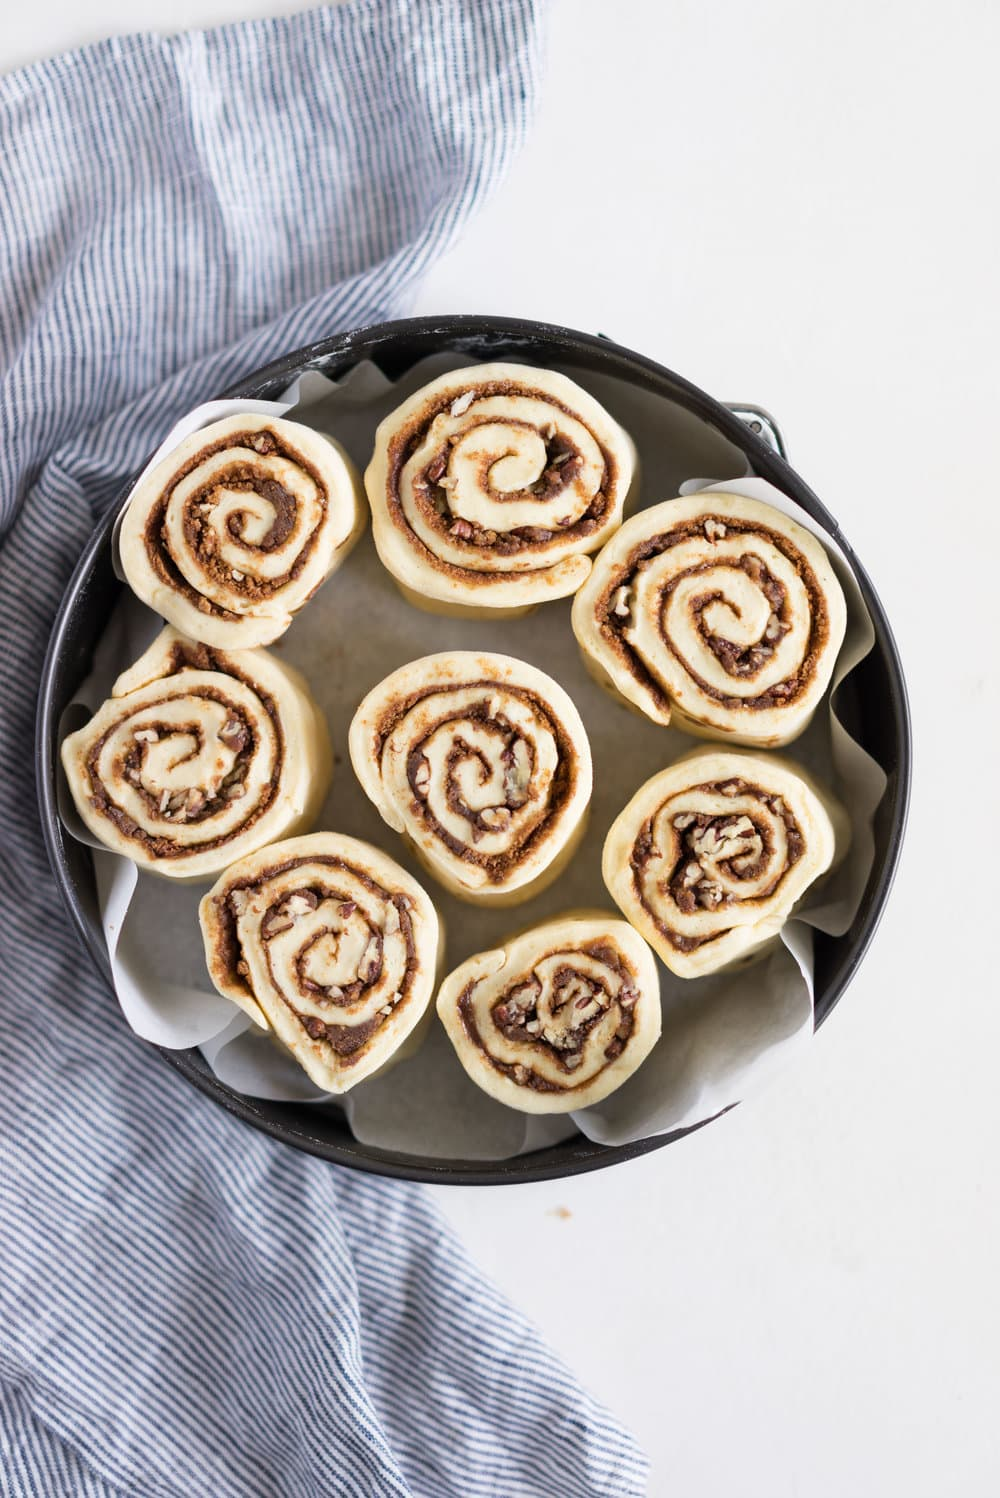 Overnight Cinnamon Buns with Cream Cheese Frosting - Pillowy brioche that is prepared the night before, then rolled out the next morning, stuffed with cinnamon sugar and toasted peanuts, then smothered in cream cheese frosting while still warm. The perfect treat to please a crowd. #cinnamonrolls #overnight #brioche